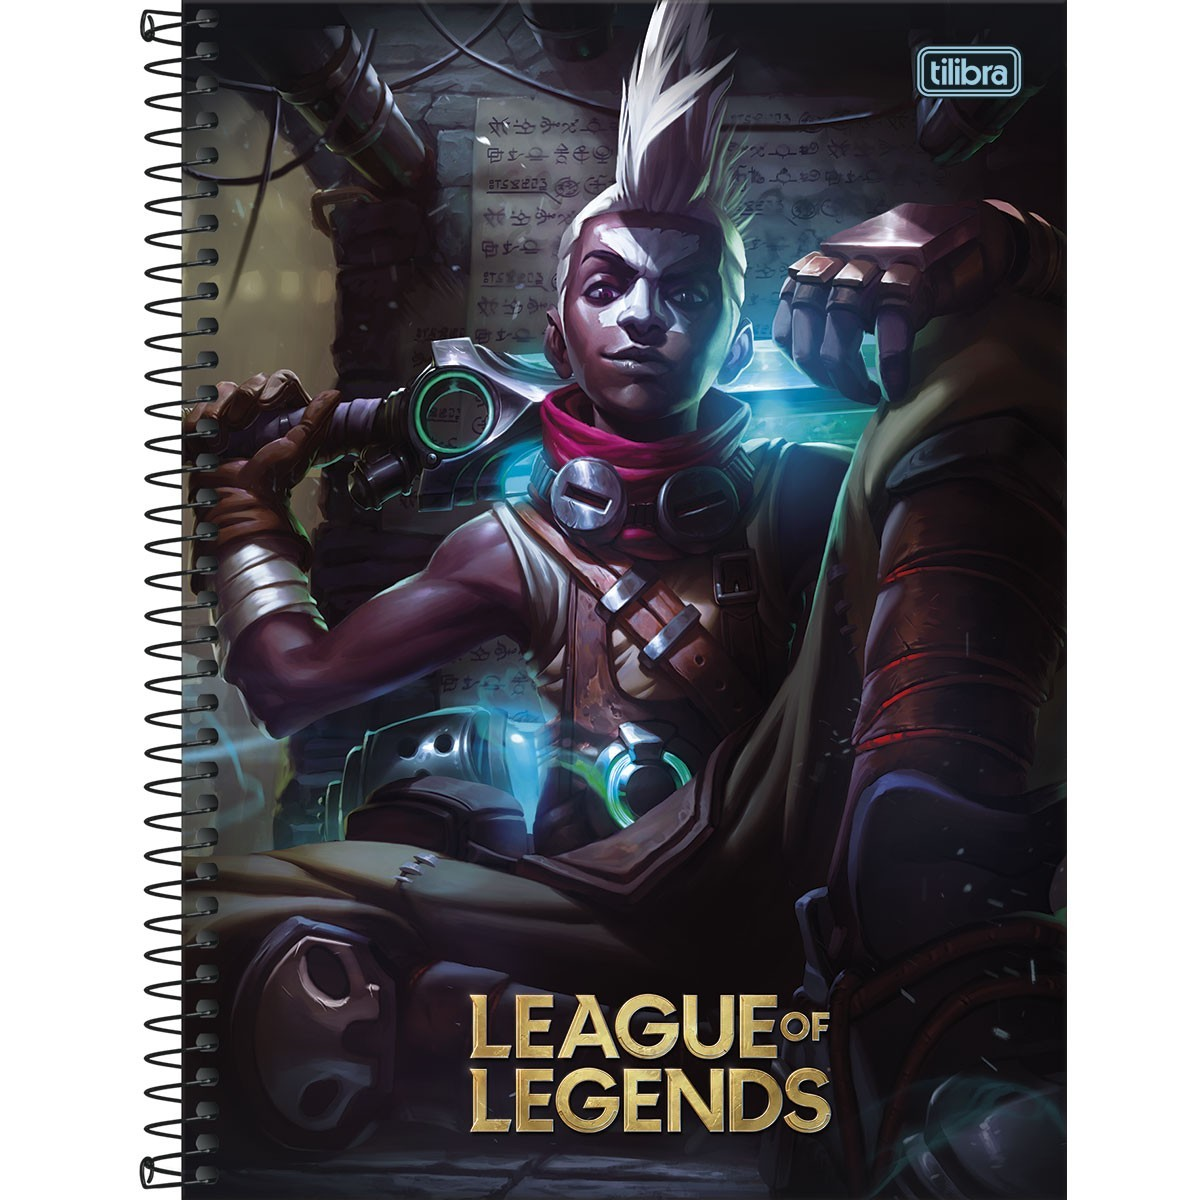 Caderno Espiral Capa Dura Universitário 20 Matérias League of Legends Ekko 320 Folhas